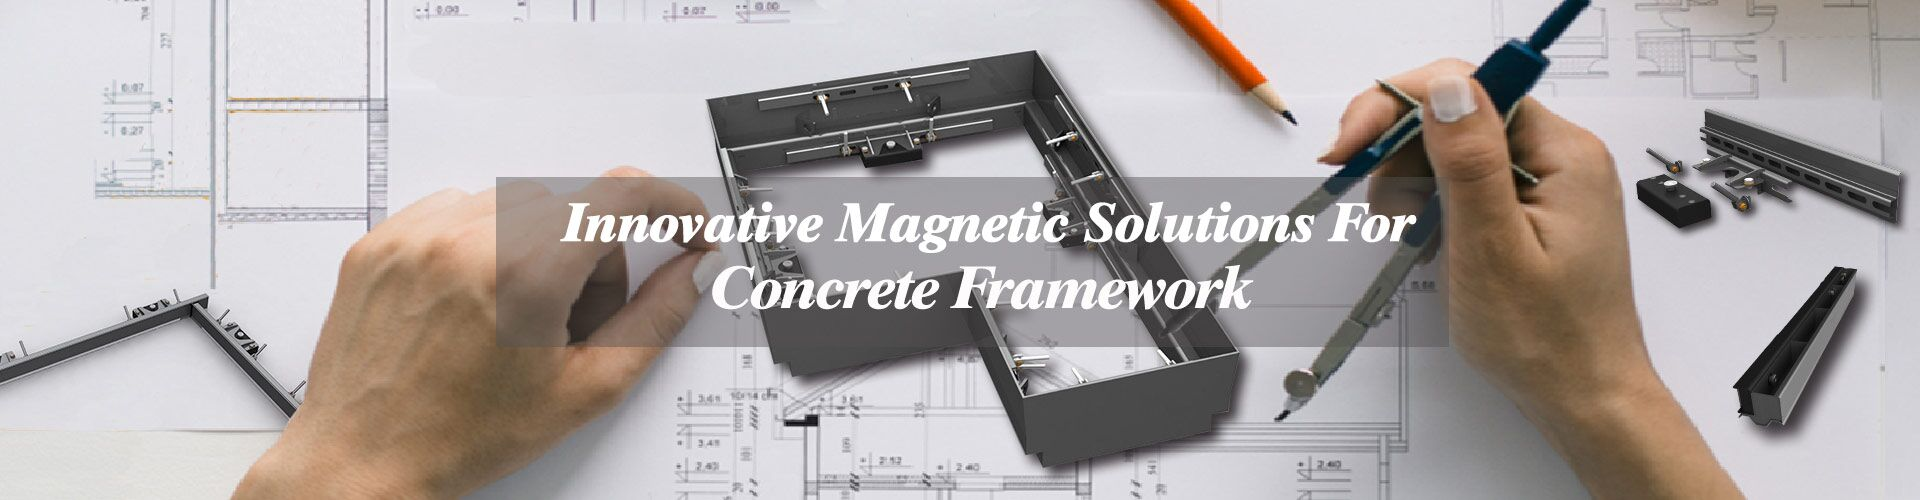 innovative magnetic solution for concrete formwork